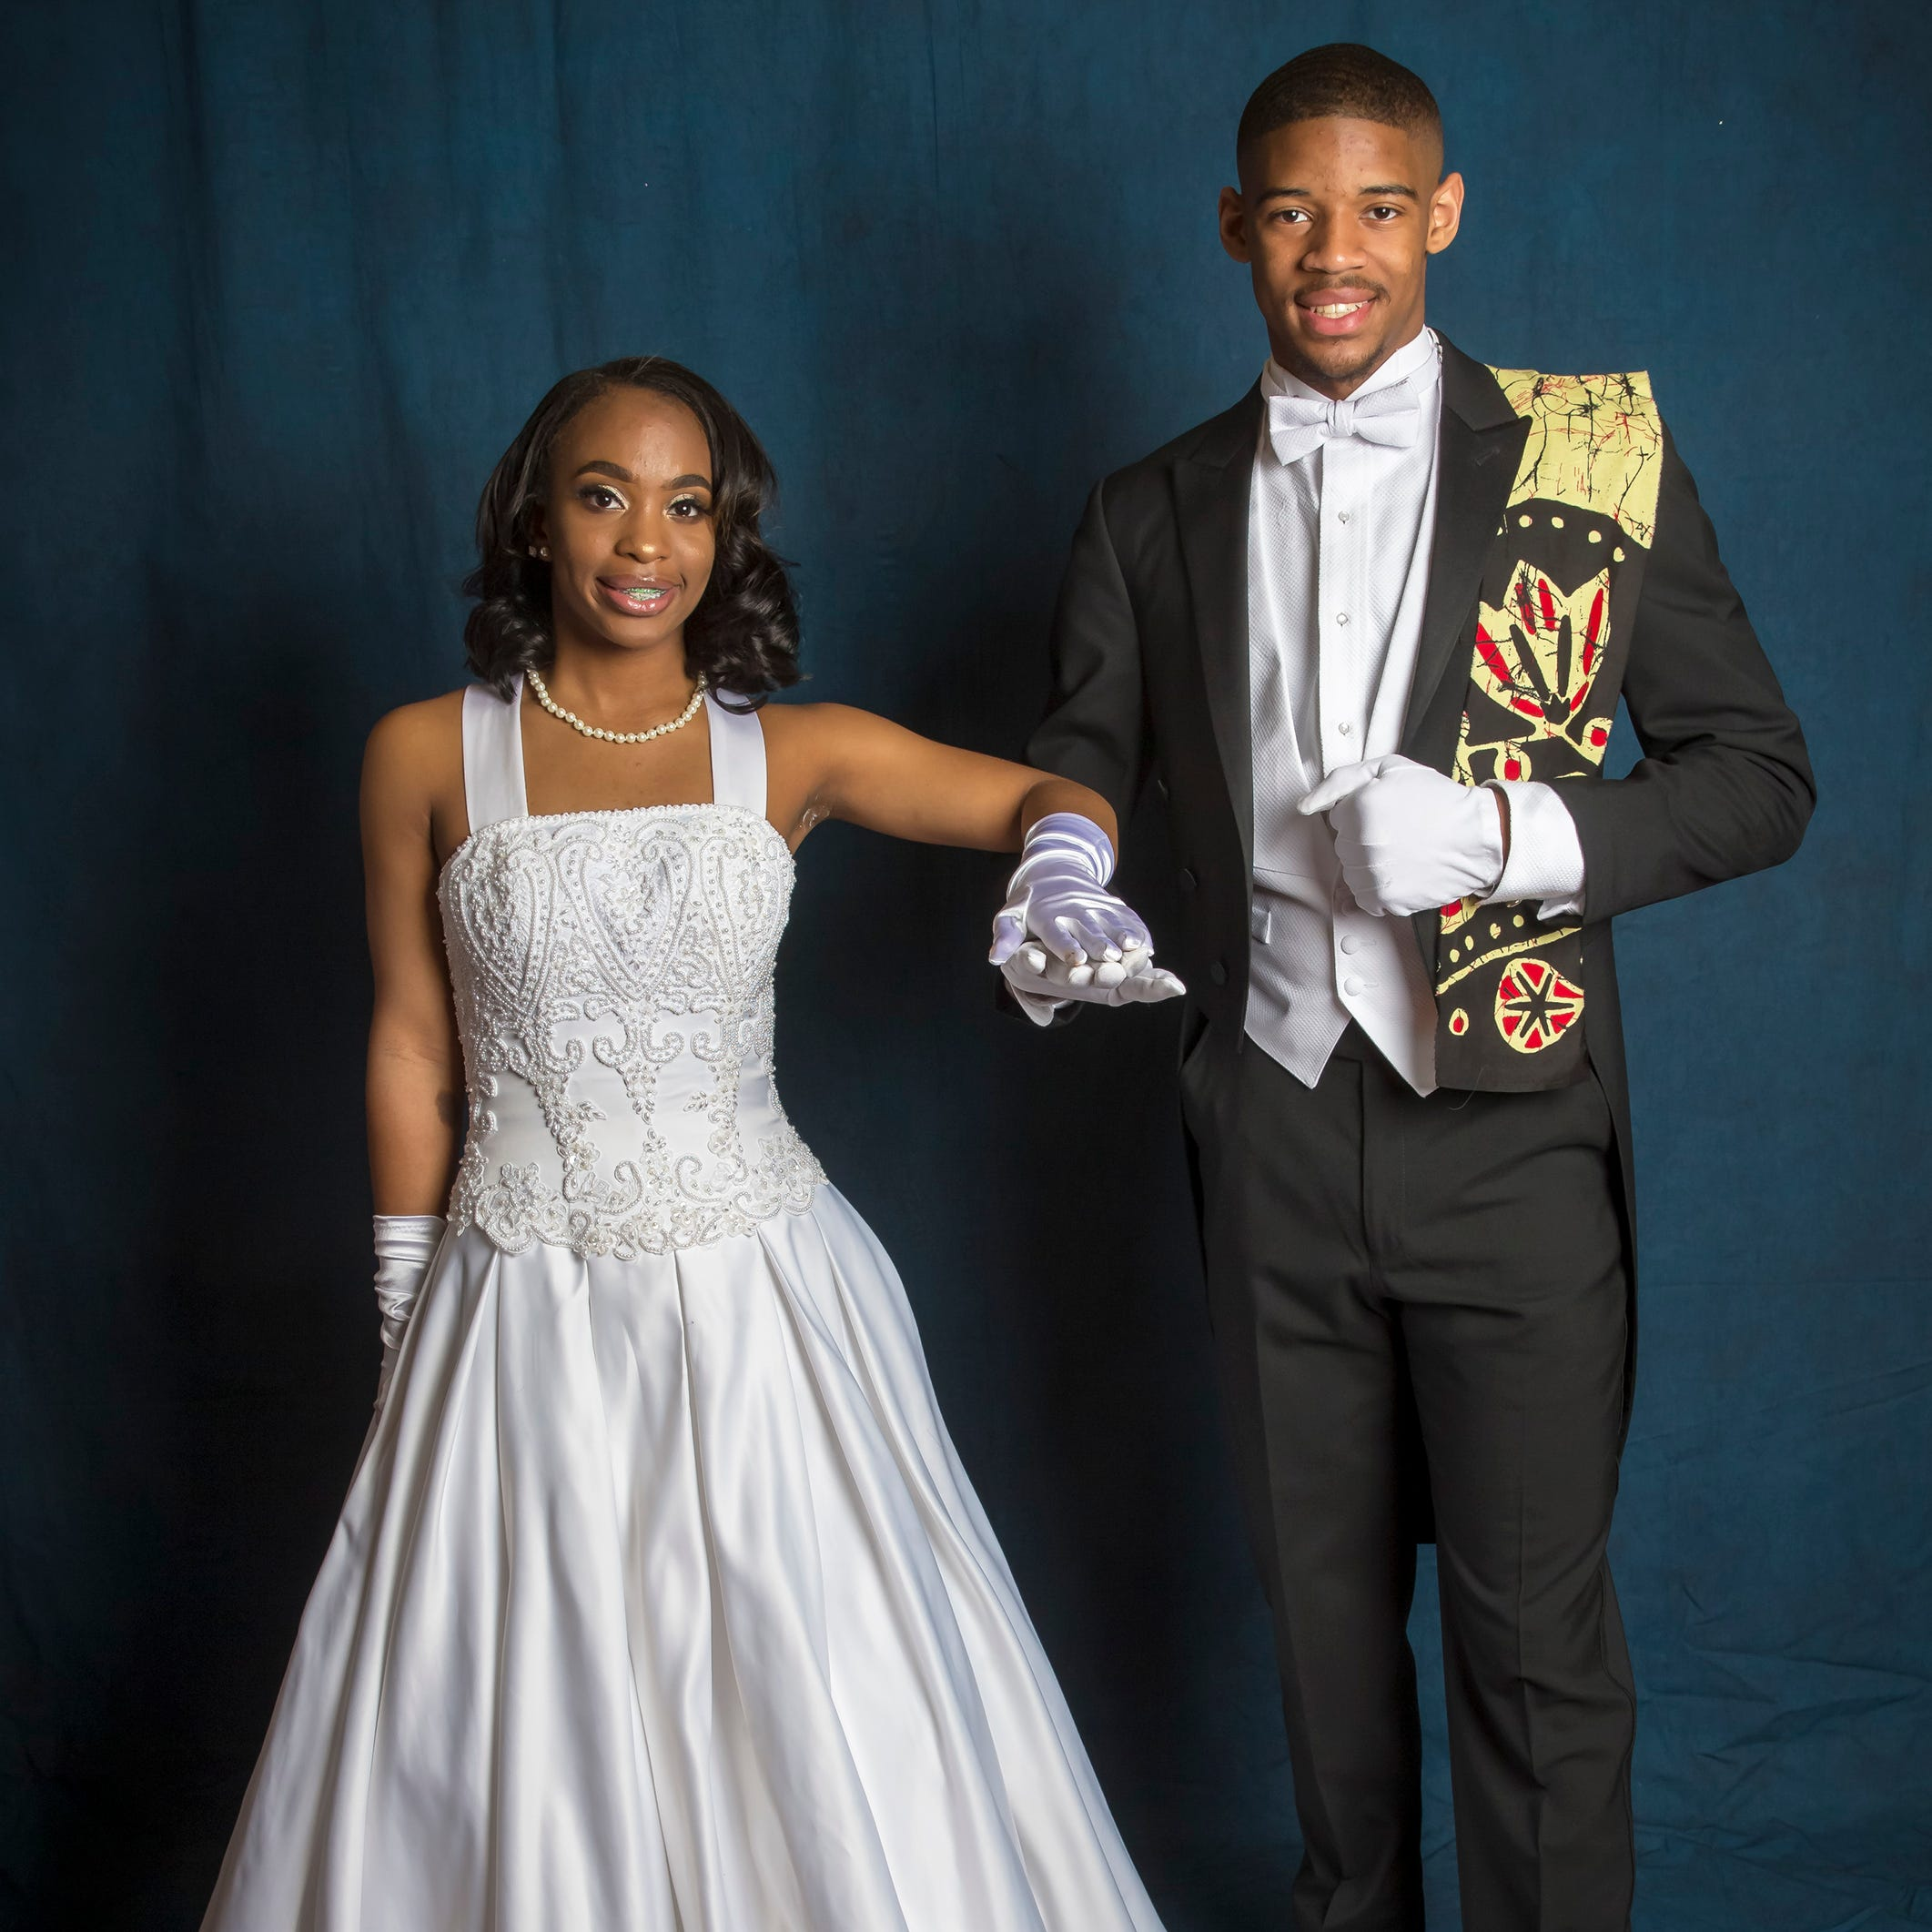 Stewarts Creek High's Tylan Beard named Mr. Beautillion 2019